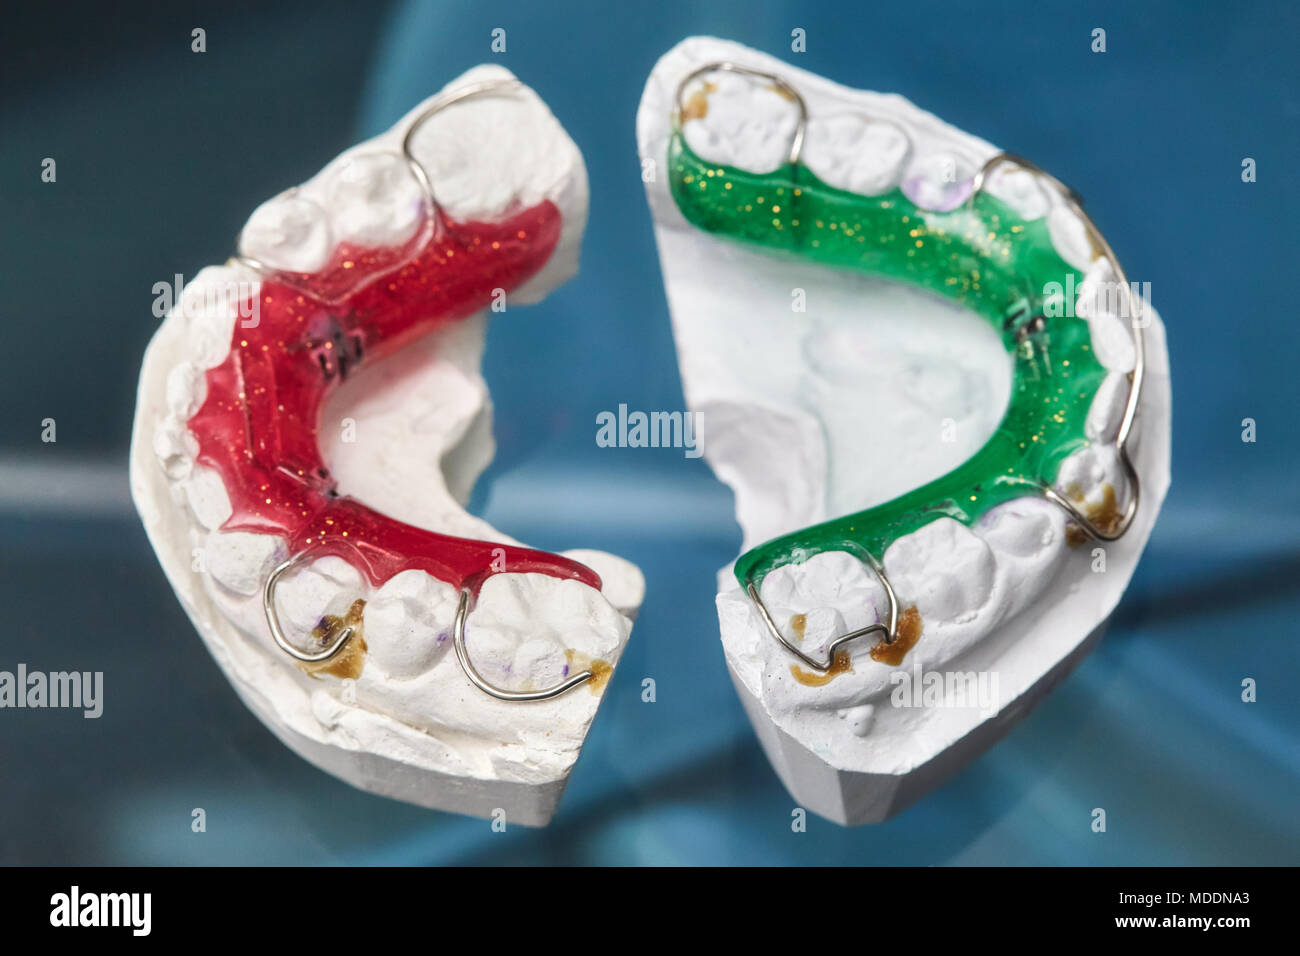 Colorful dental braces or retainers for teeth on black glass ...